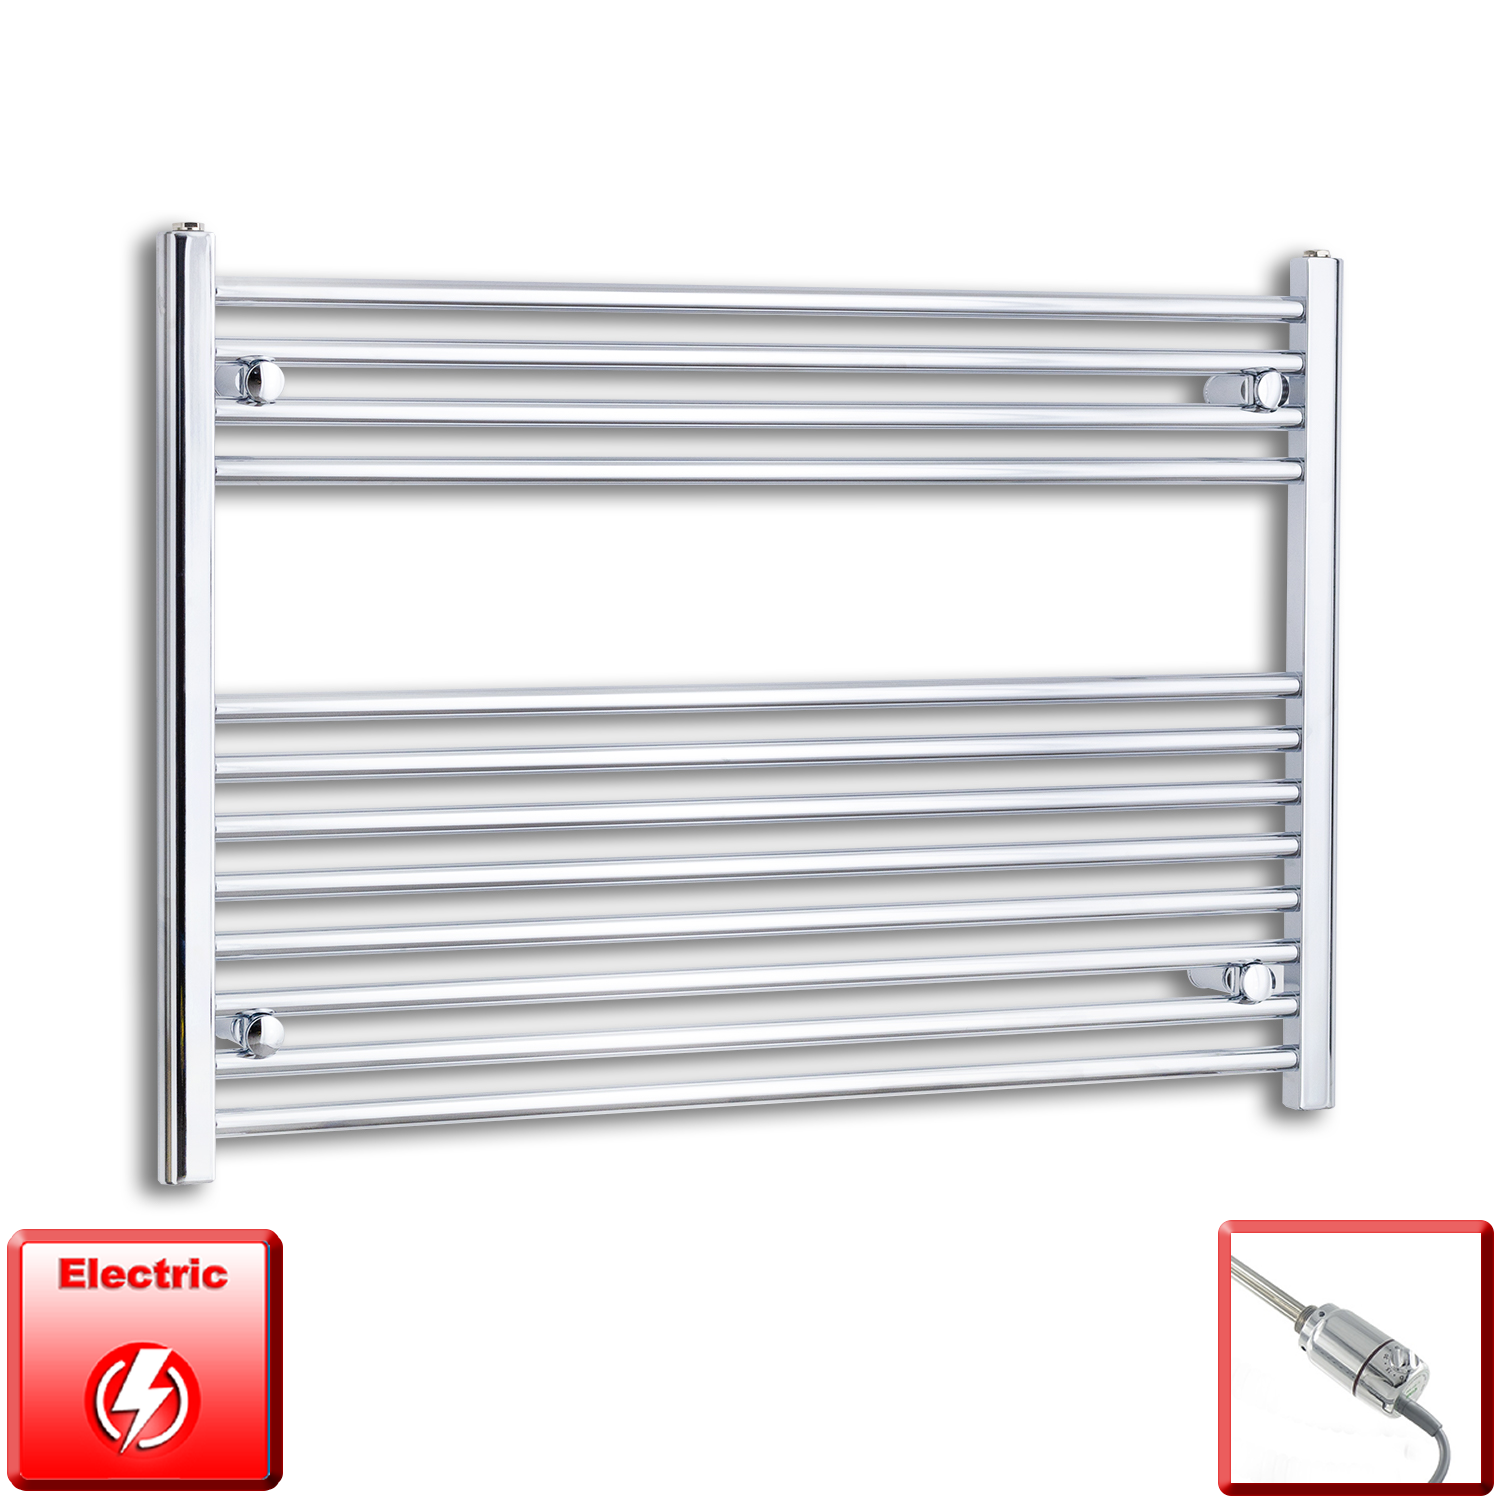 1000mm Wide 700mm High Flat Chrome Pre-Filled Electric Heated Towel Rail Radiator HTR,GT Thermostatic